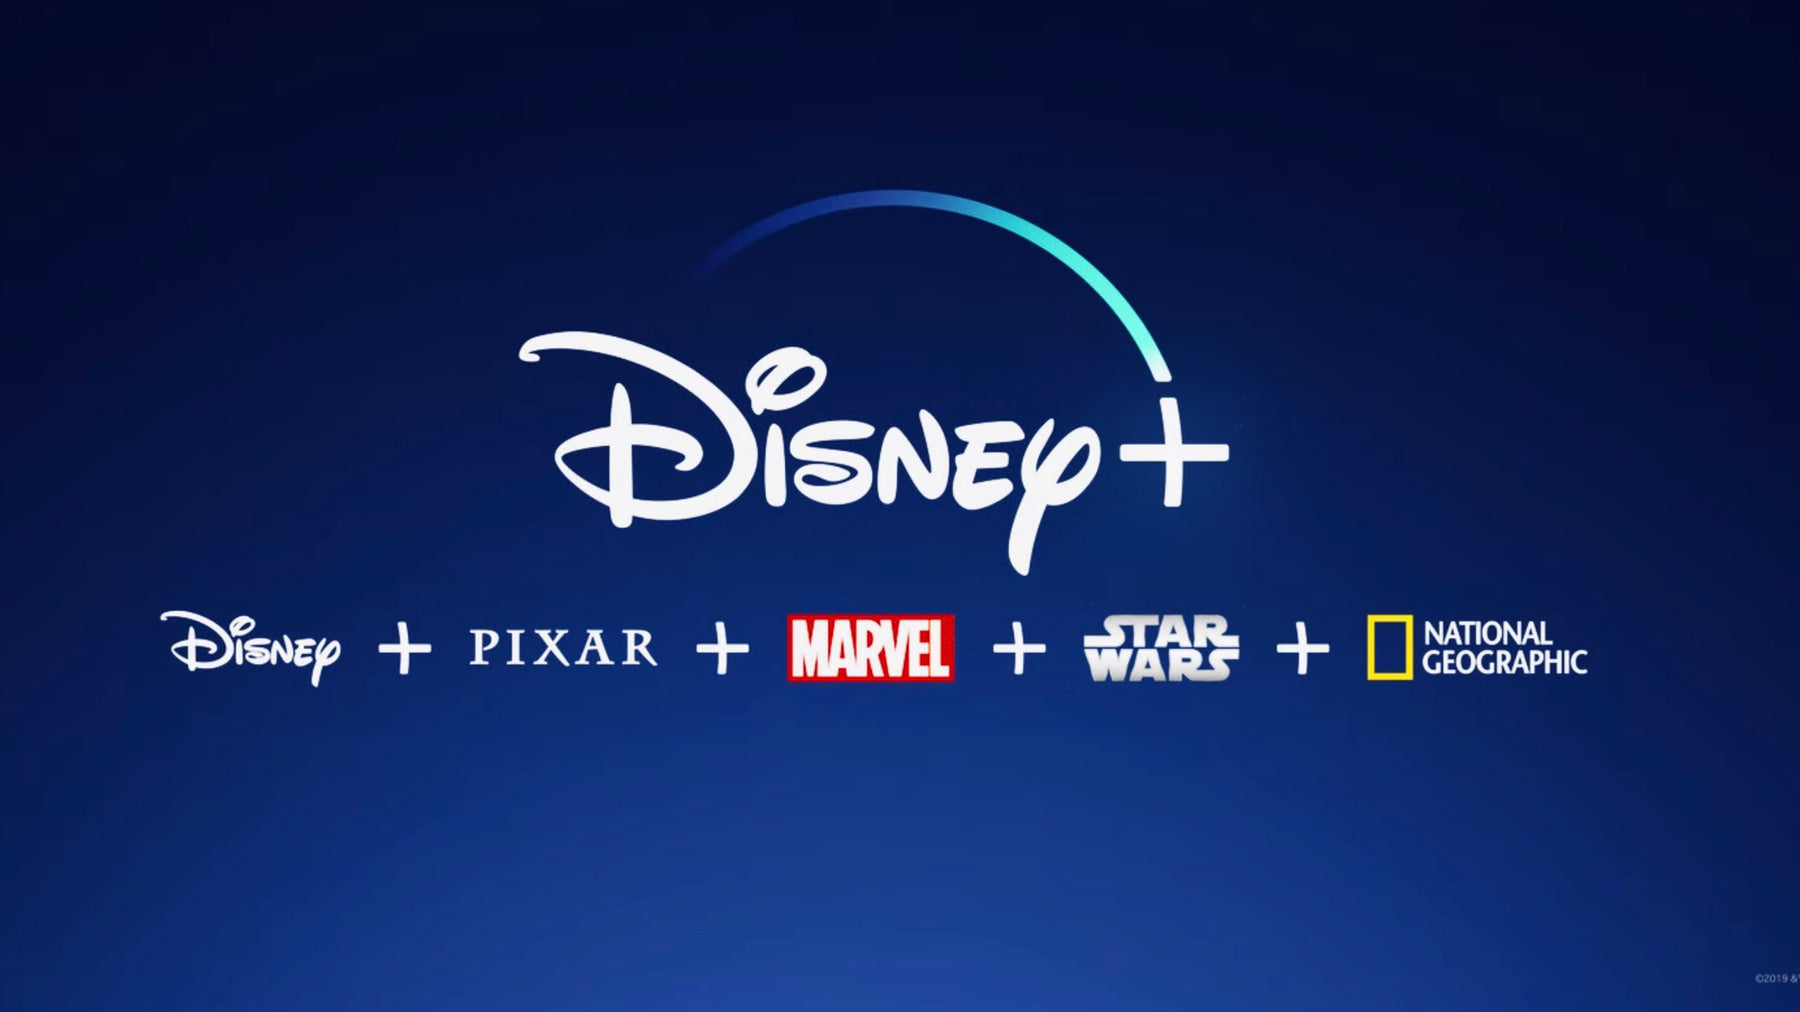 Disney+ is coming to the UK! And here are the best toys to pair it with...